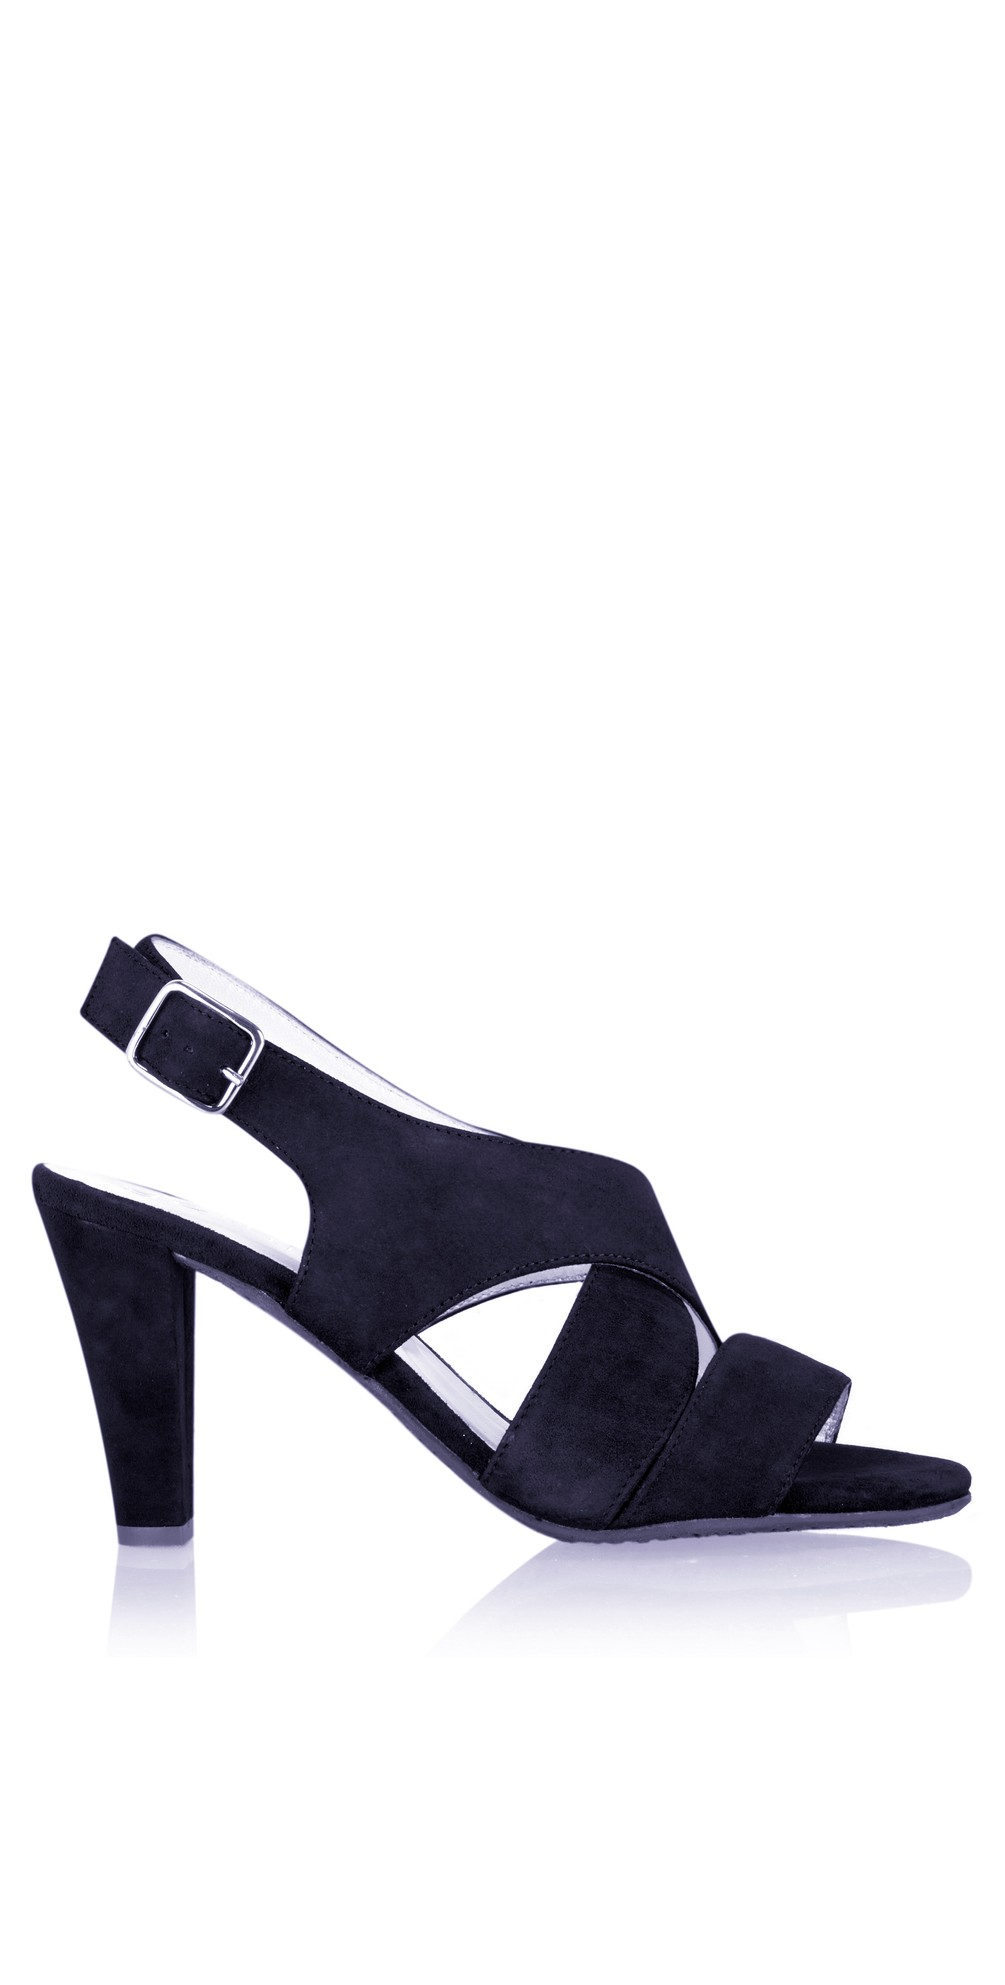 Valkyrie Navy Suede Sandal main image